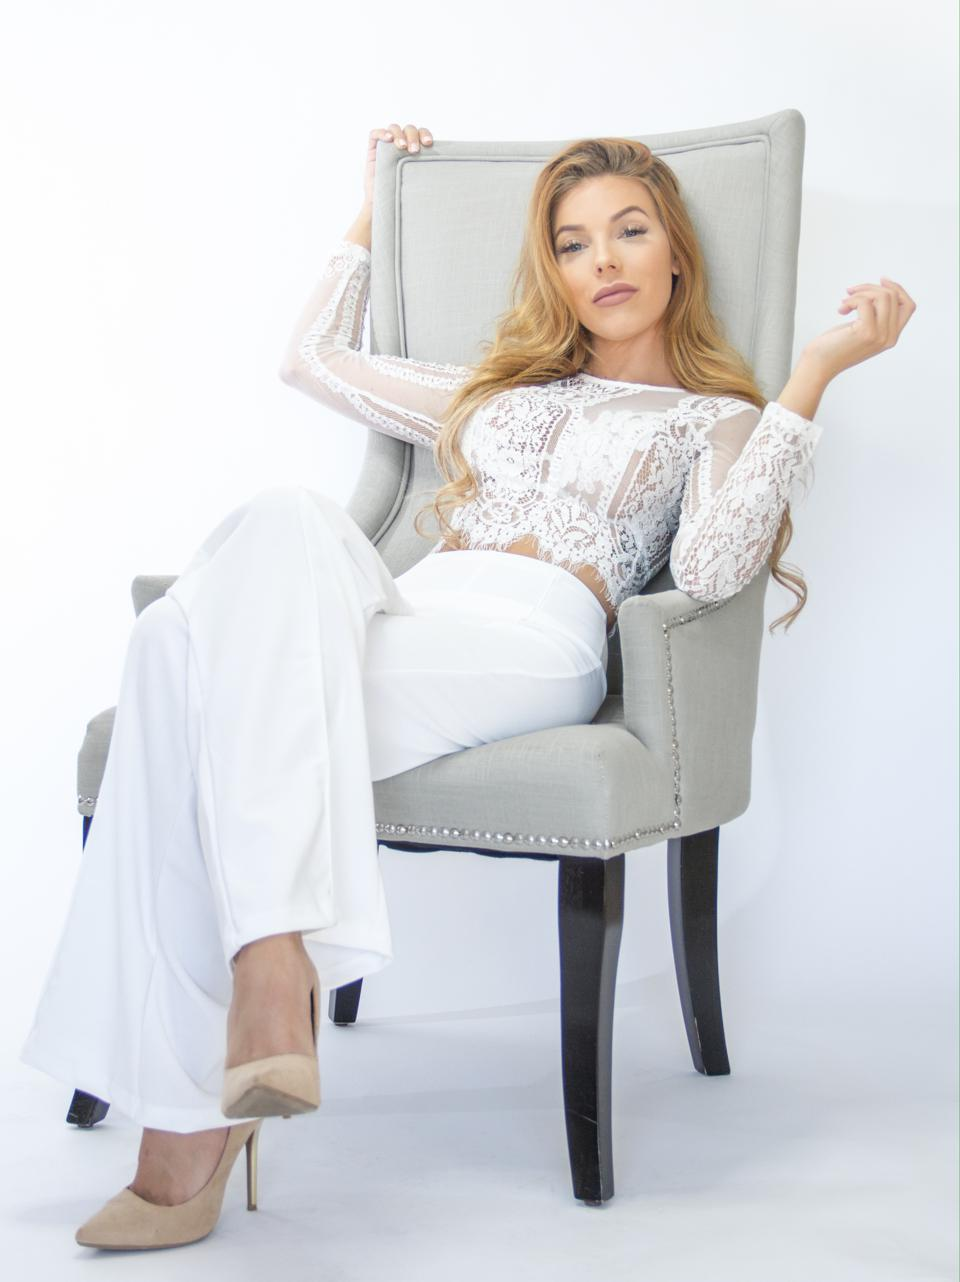 MelRose Michaels relaxes in a chair wearing a white lace top and white pants.